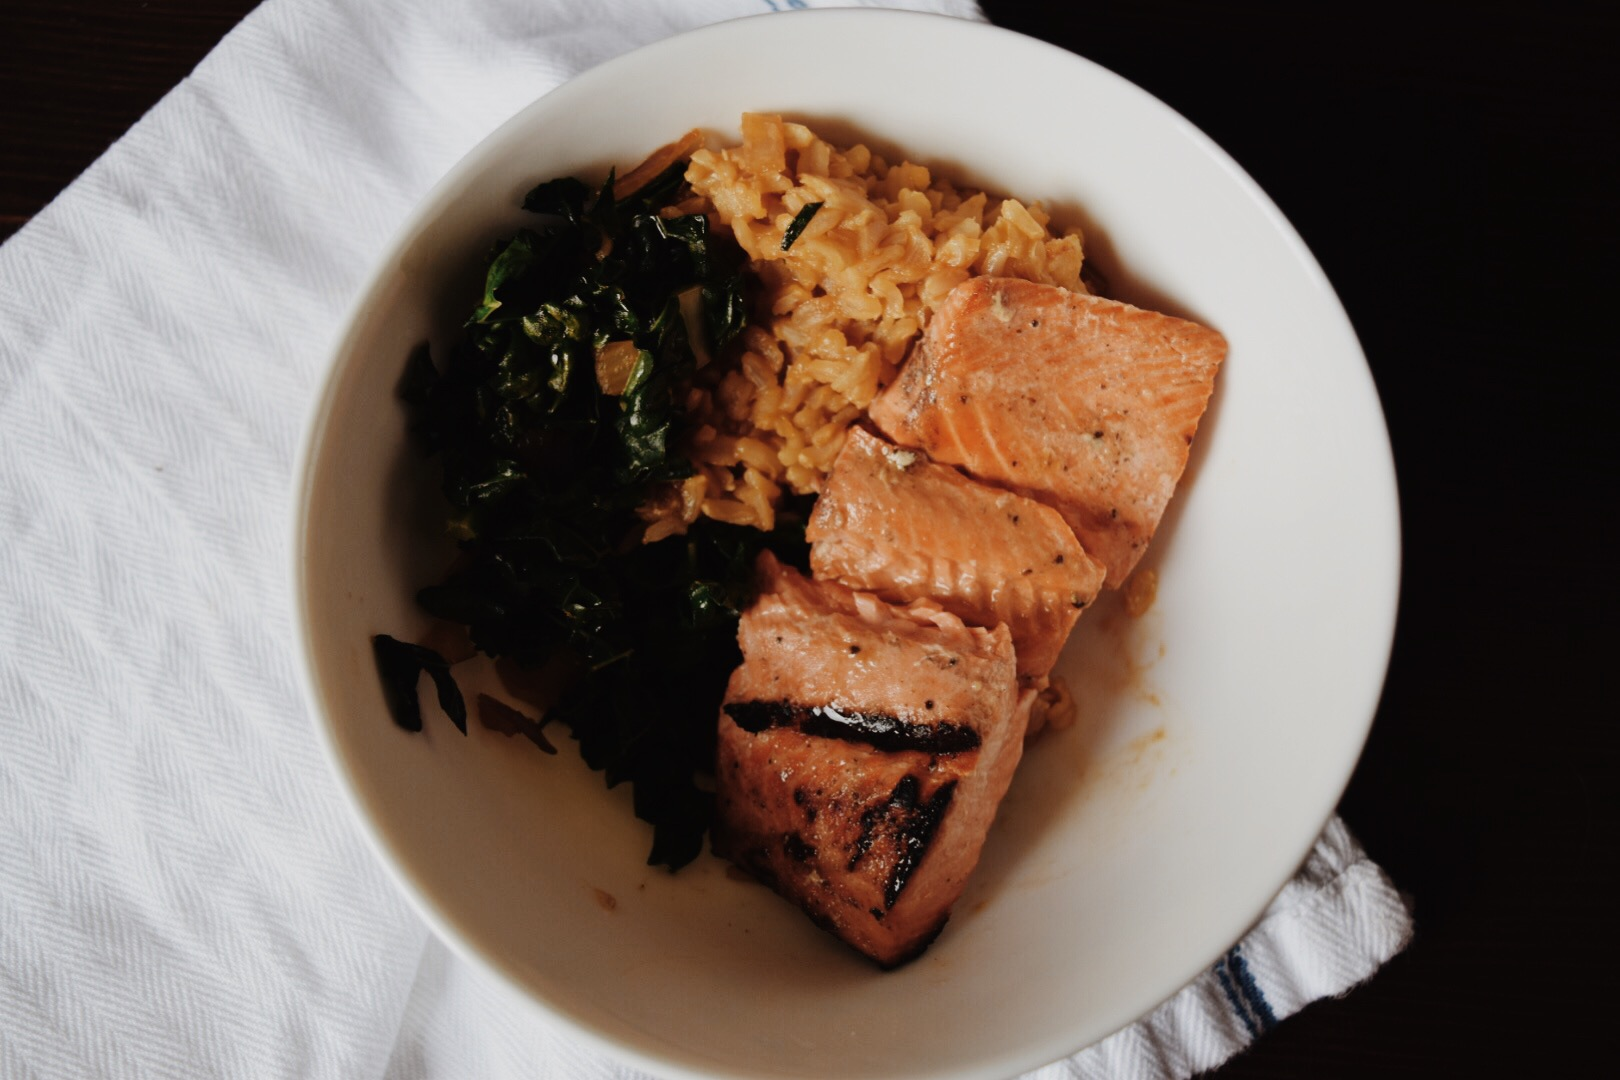 Grilled salmon with kale and rice